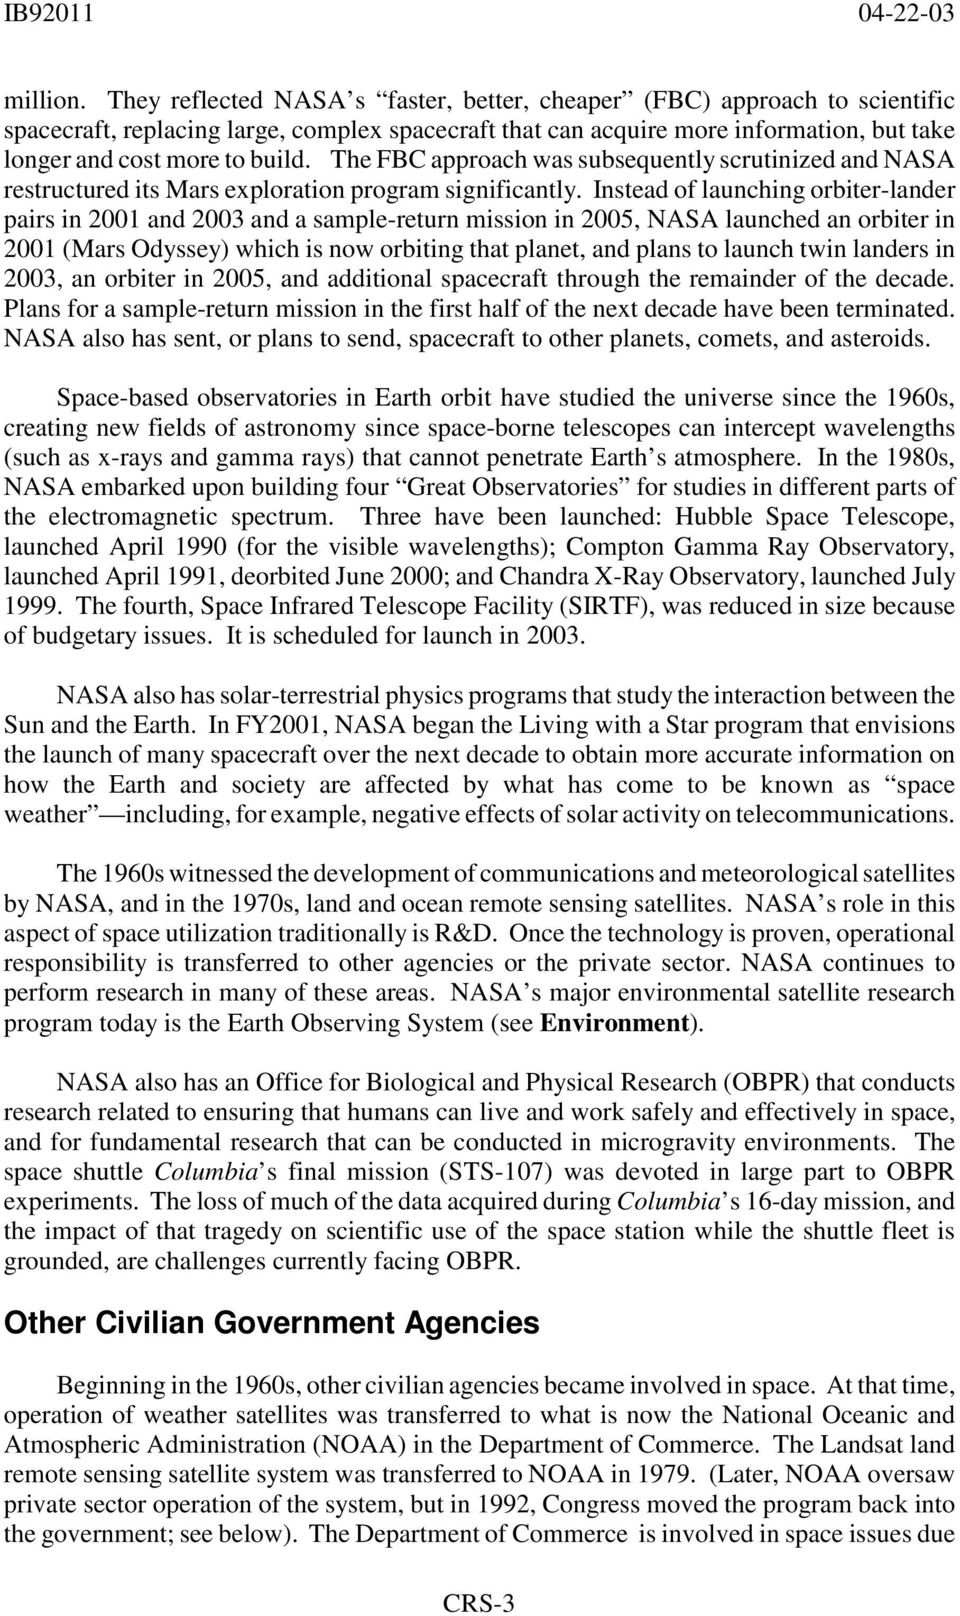 The FBC approach was subsequently scrutinized and NASA restructured its Mars exploration program significantly.